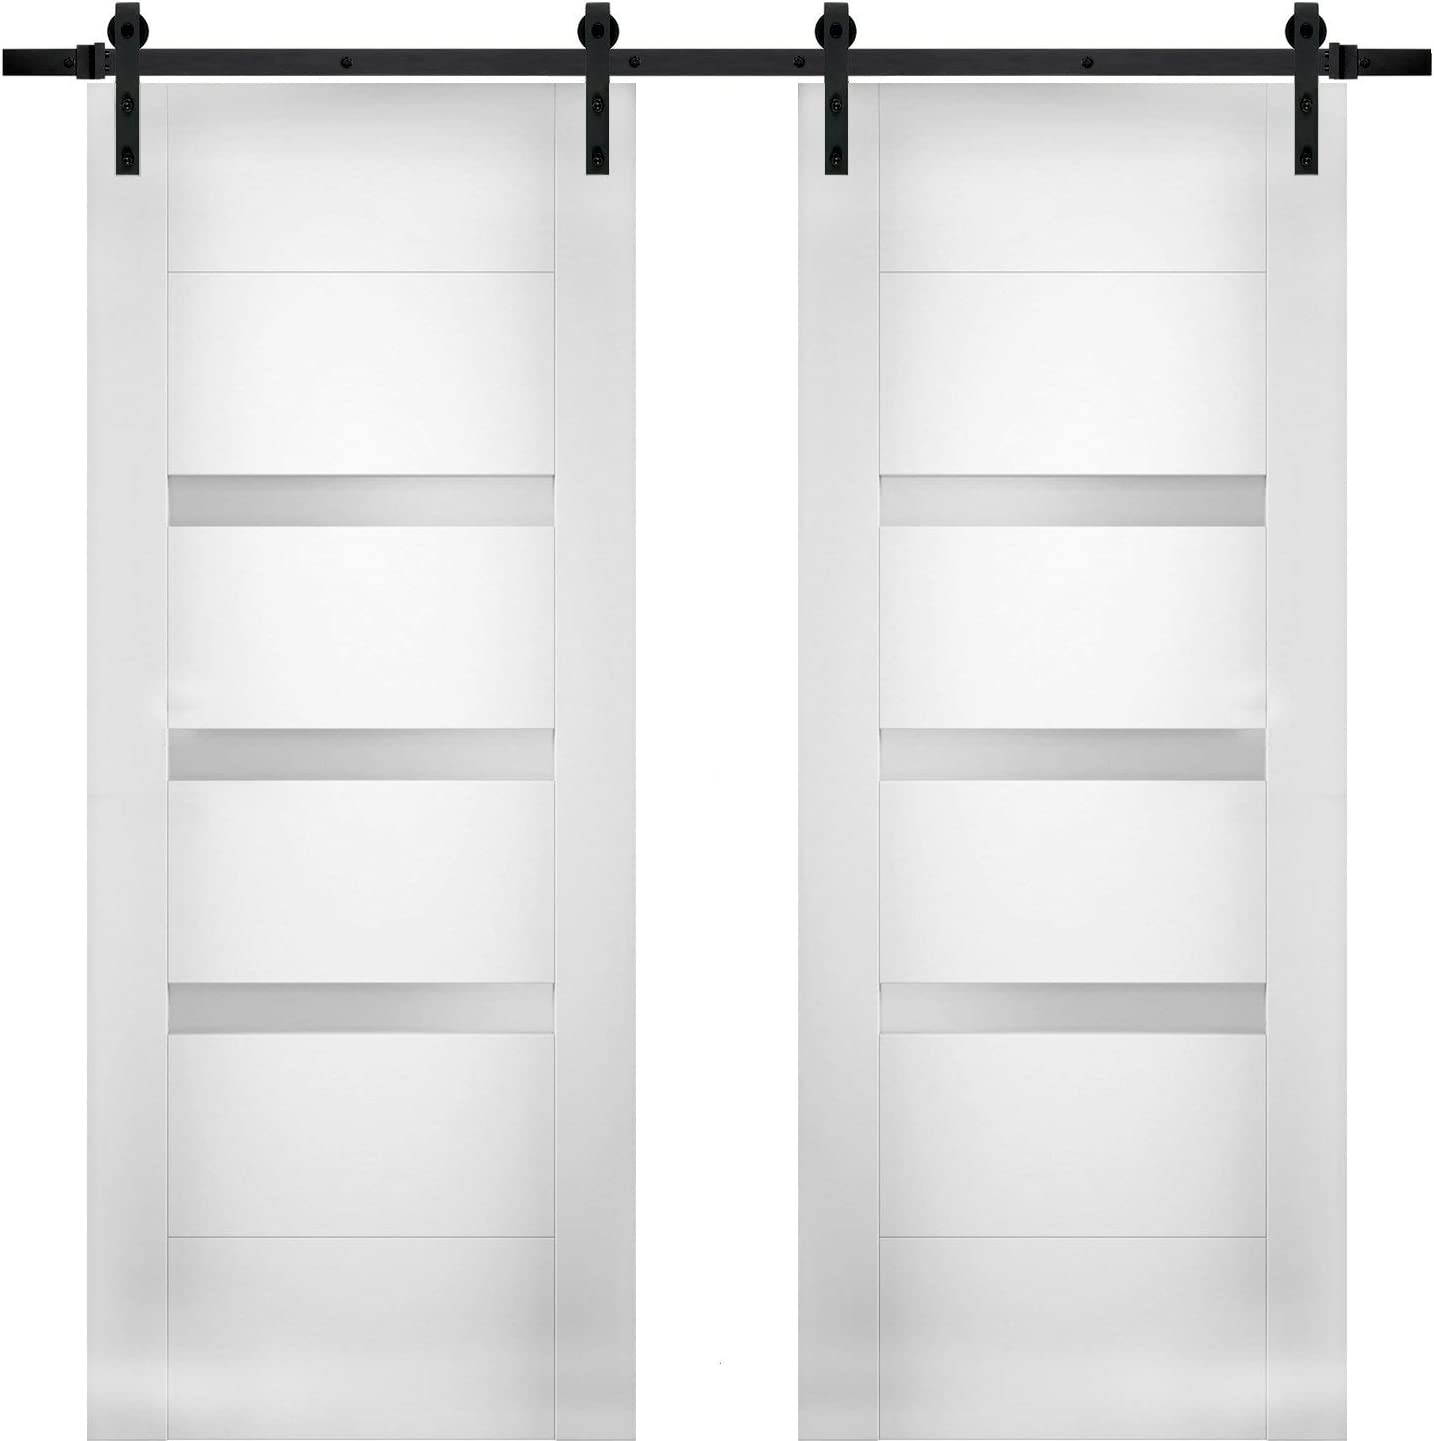 Modern Double Barn Door 48 x inches with Sete Mesa free Mall Glass Opaque 96